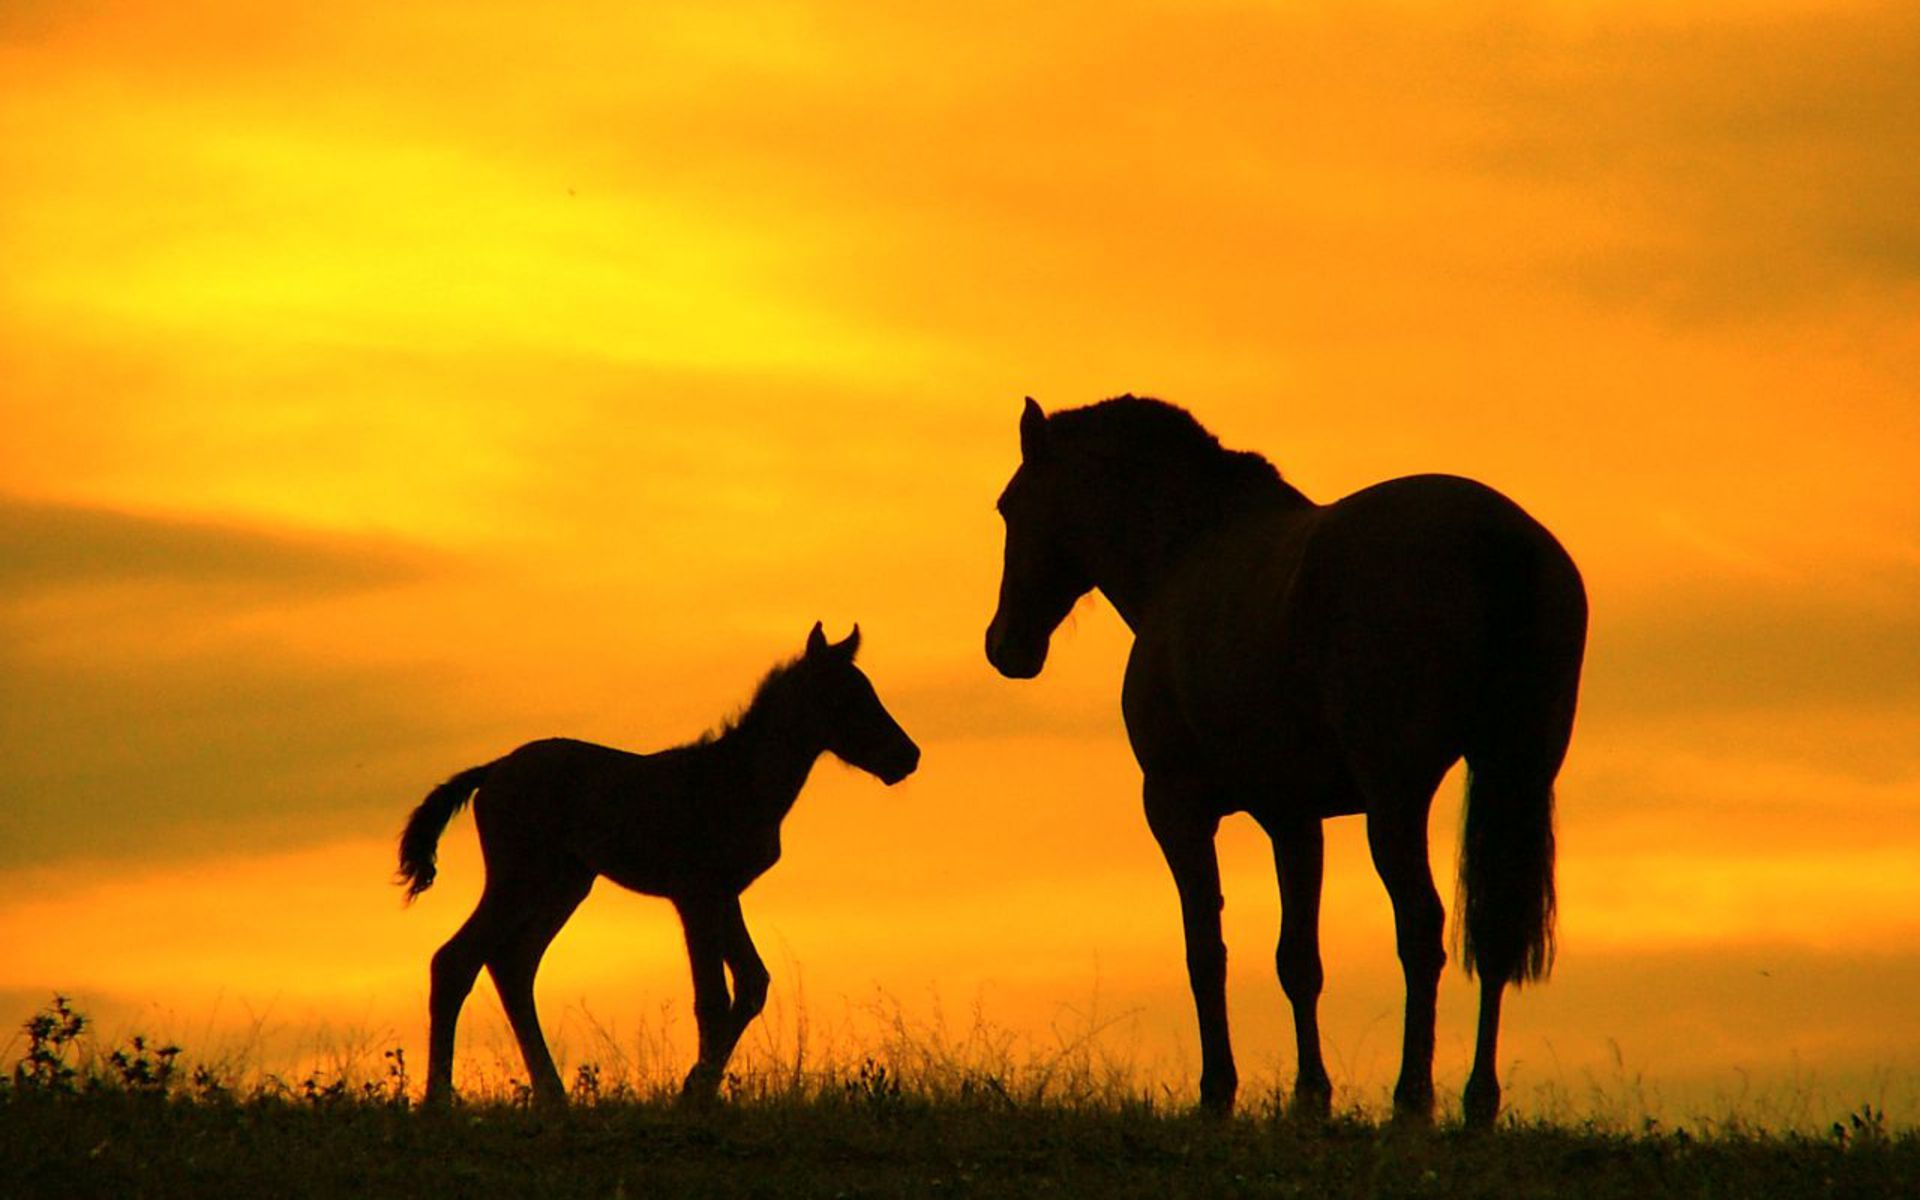 Horse Desktop wallpaper